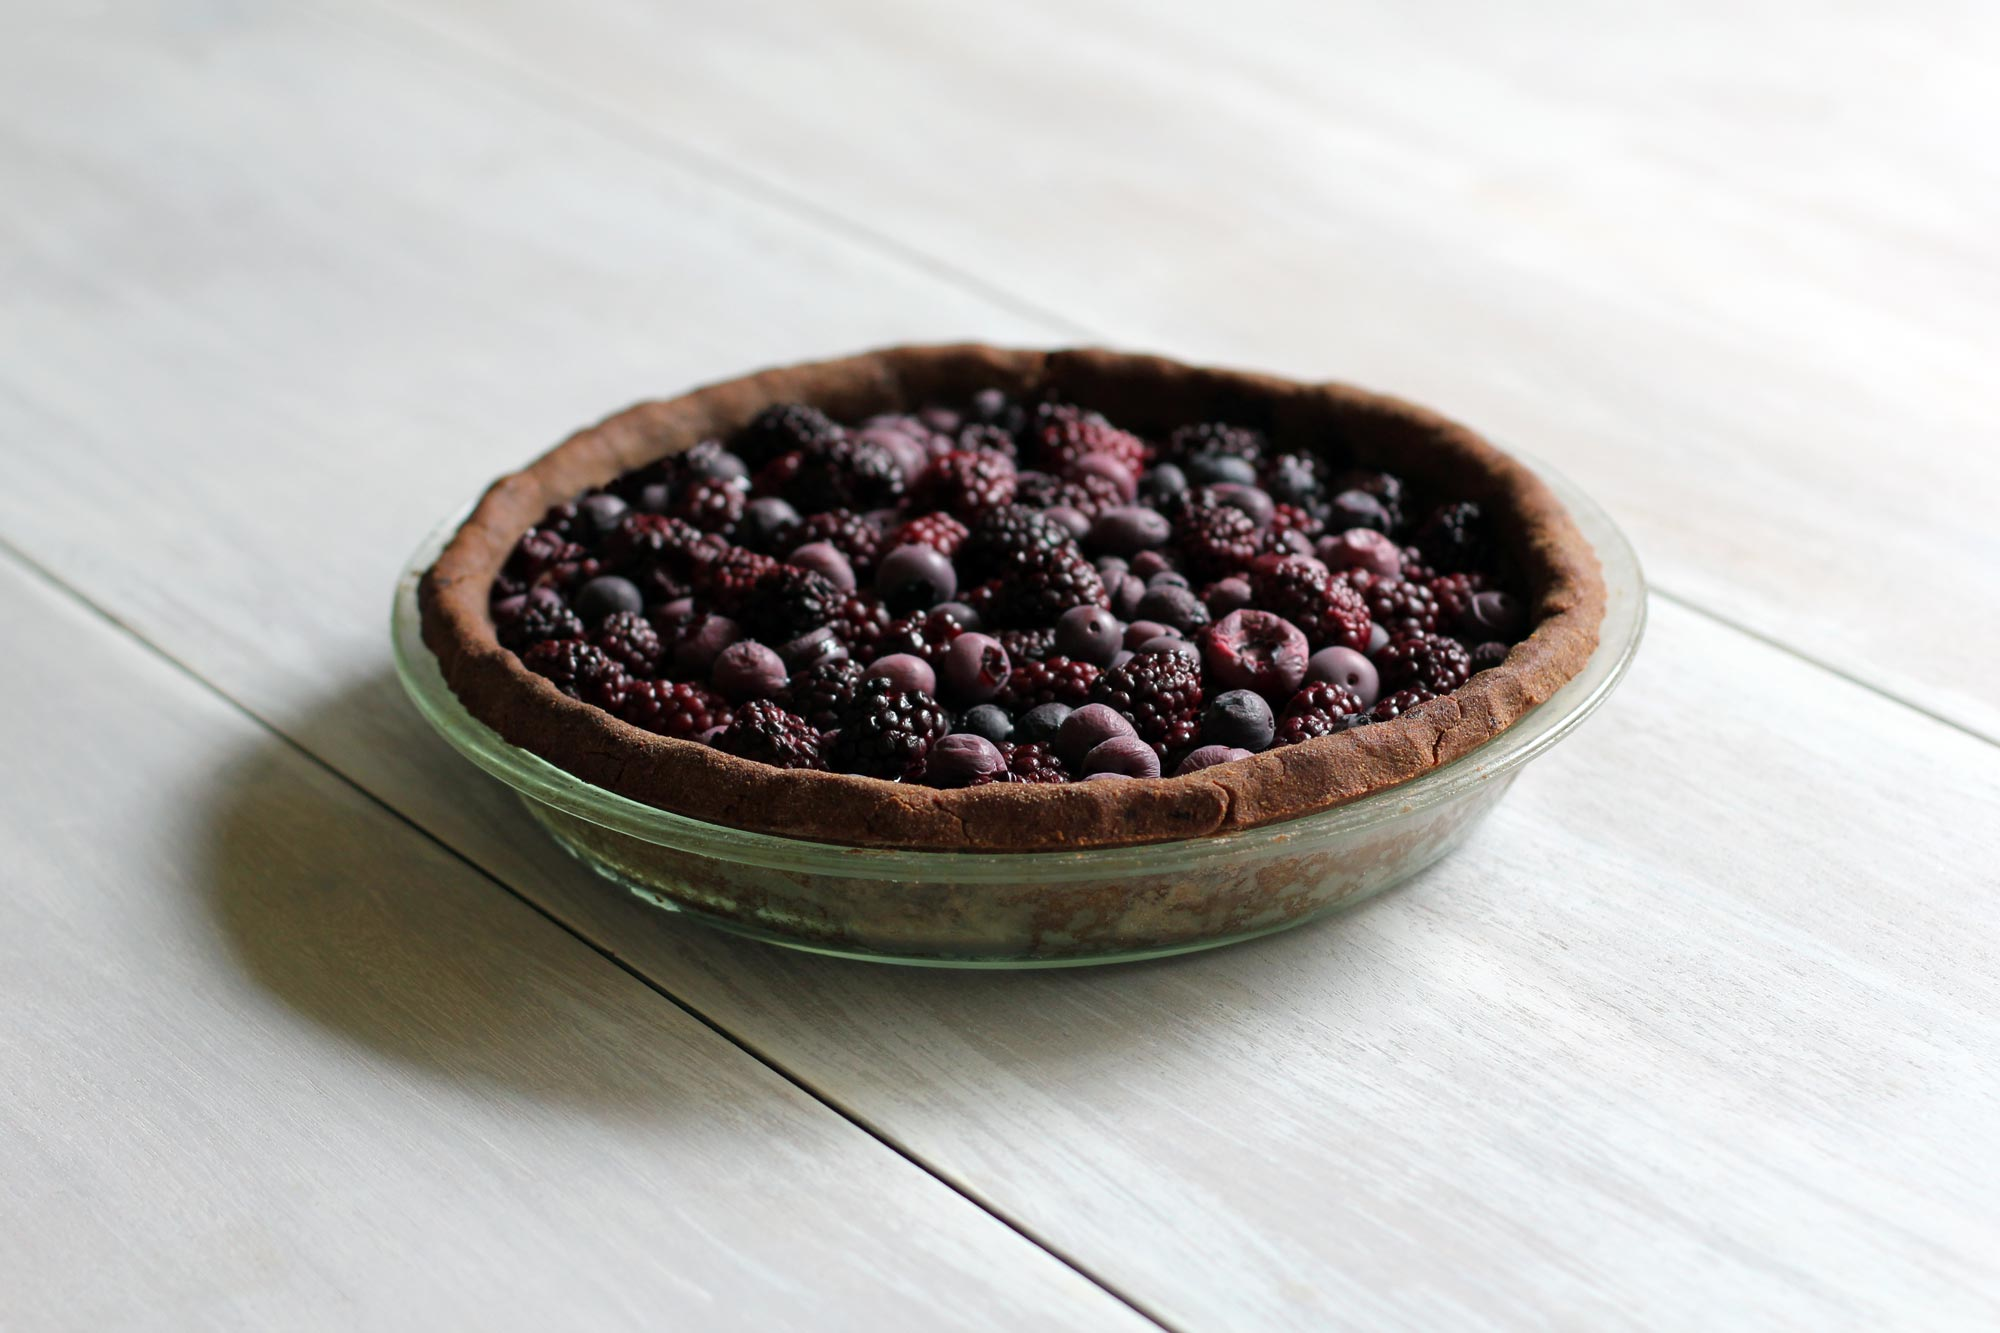 pie crust gluten free vegan Pennsylvania Dutch berries